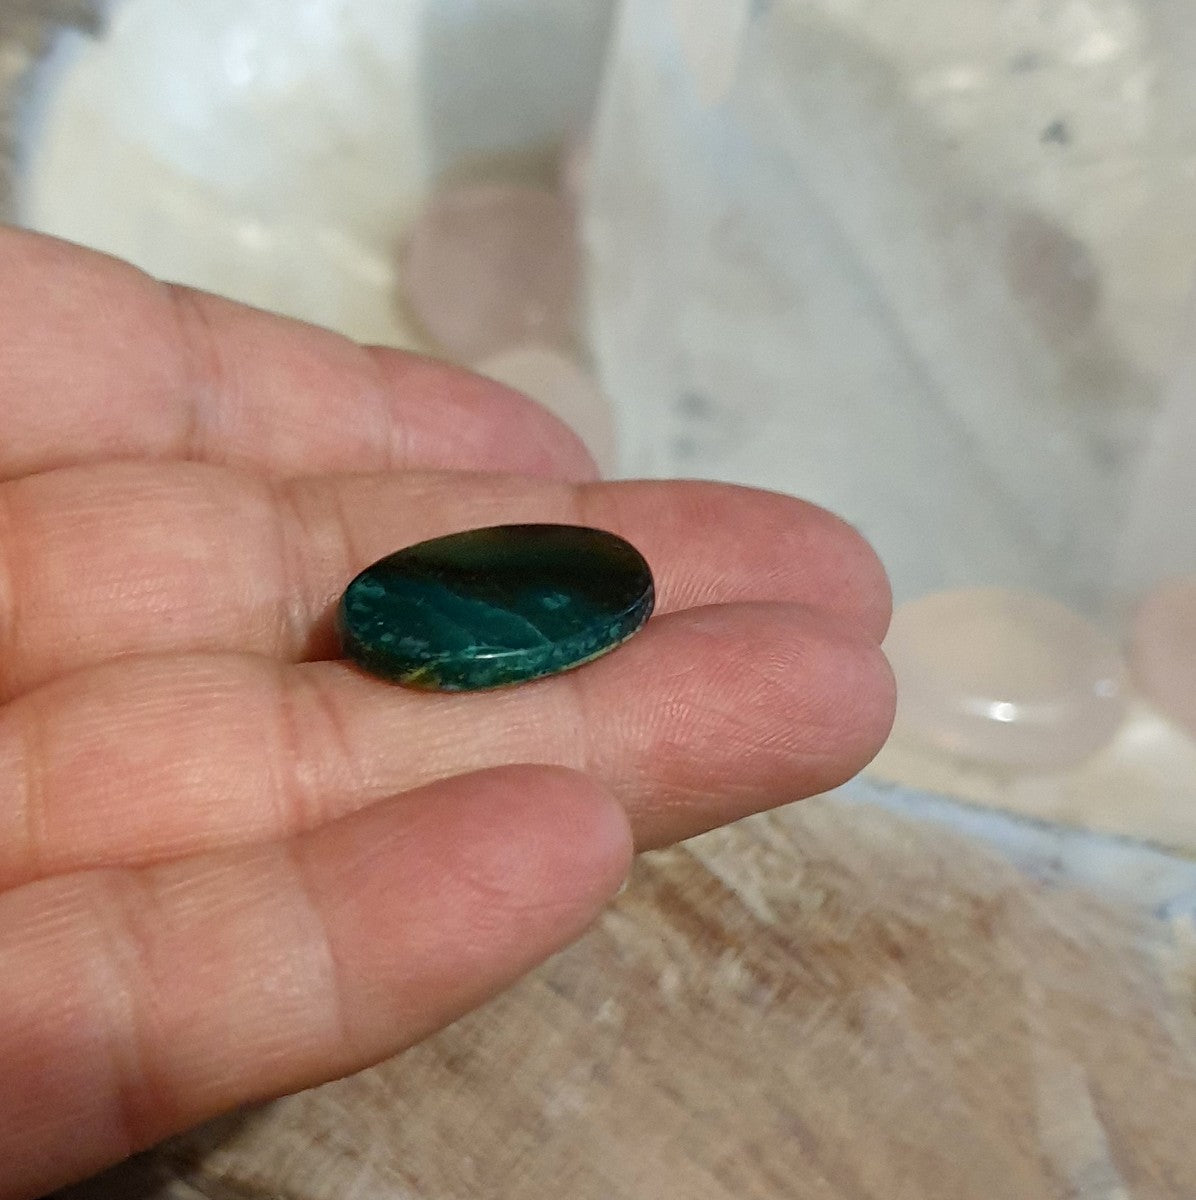 Blue Opalised Petrified Wood Cabachon Indonesia - Illiom Crystals - Afterpay Available